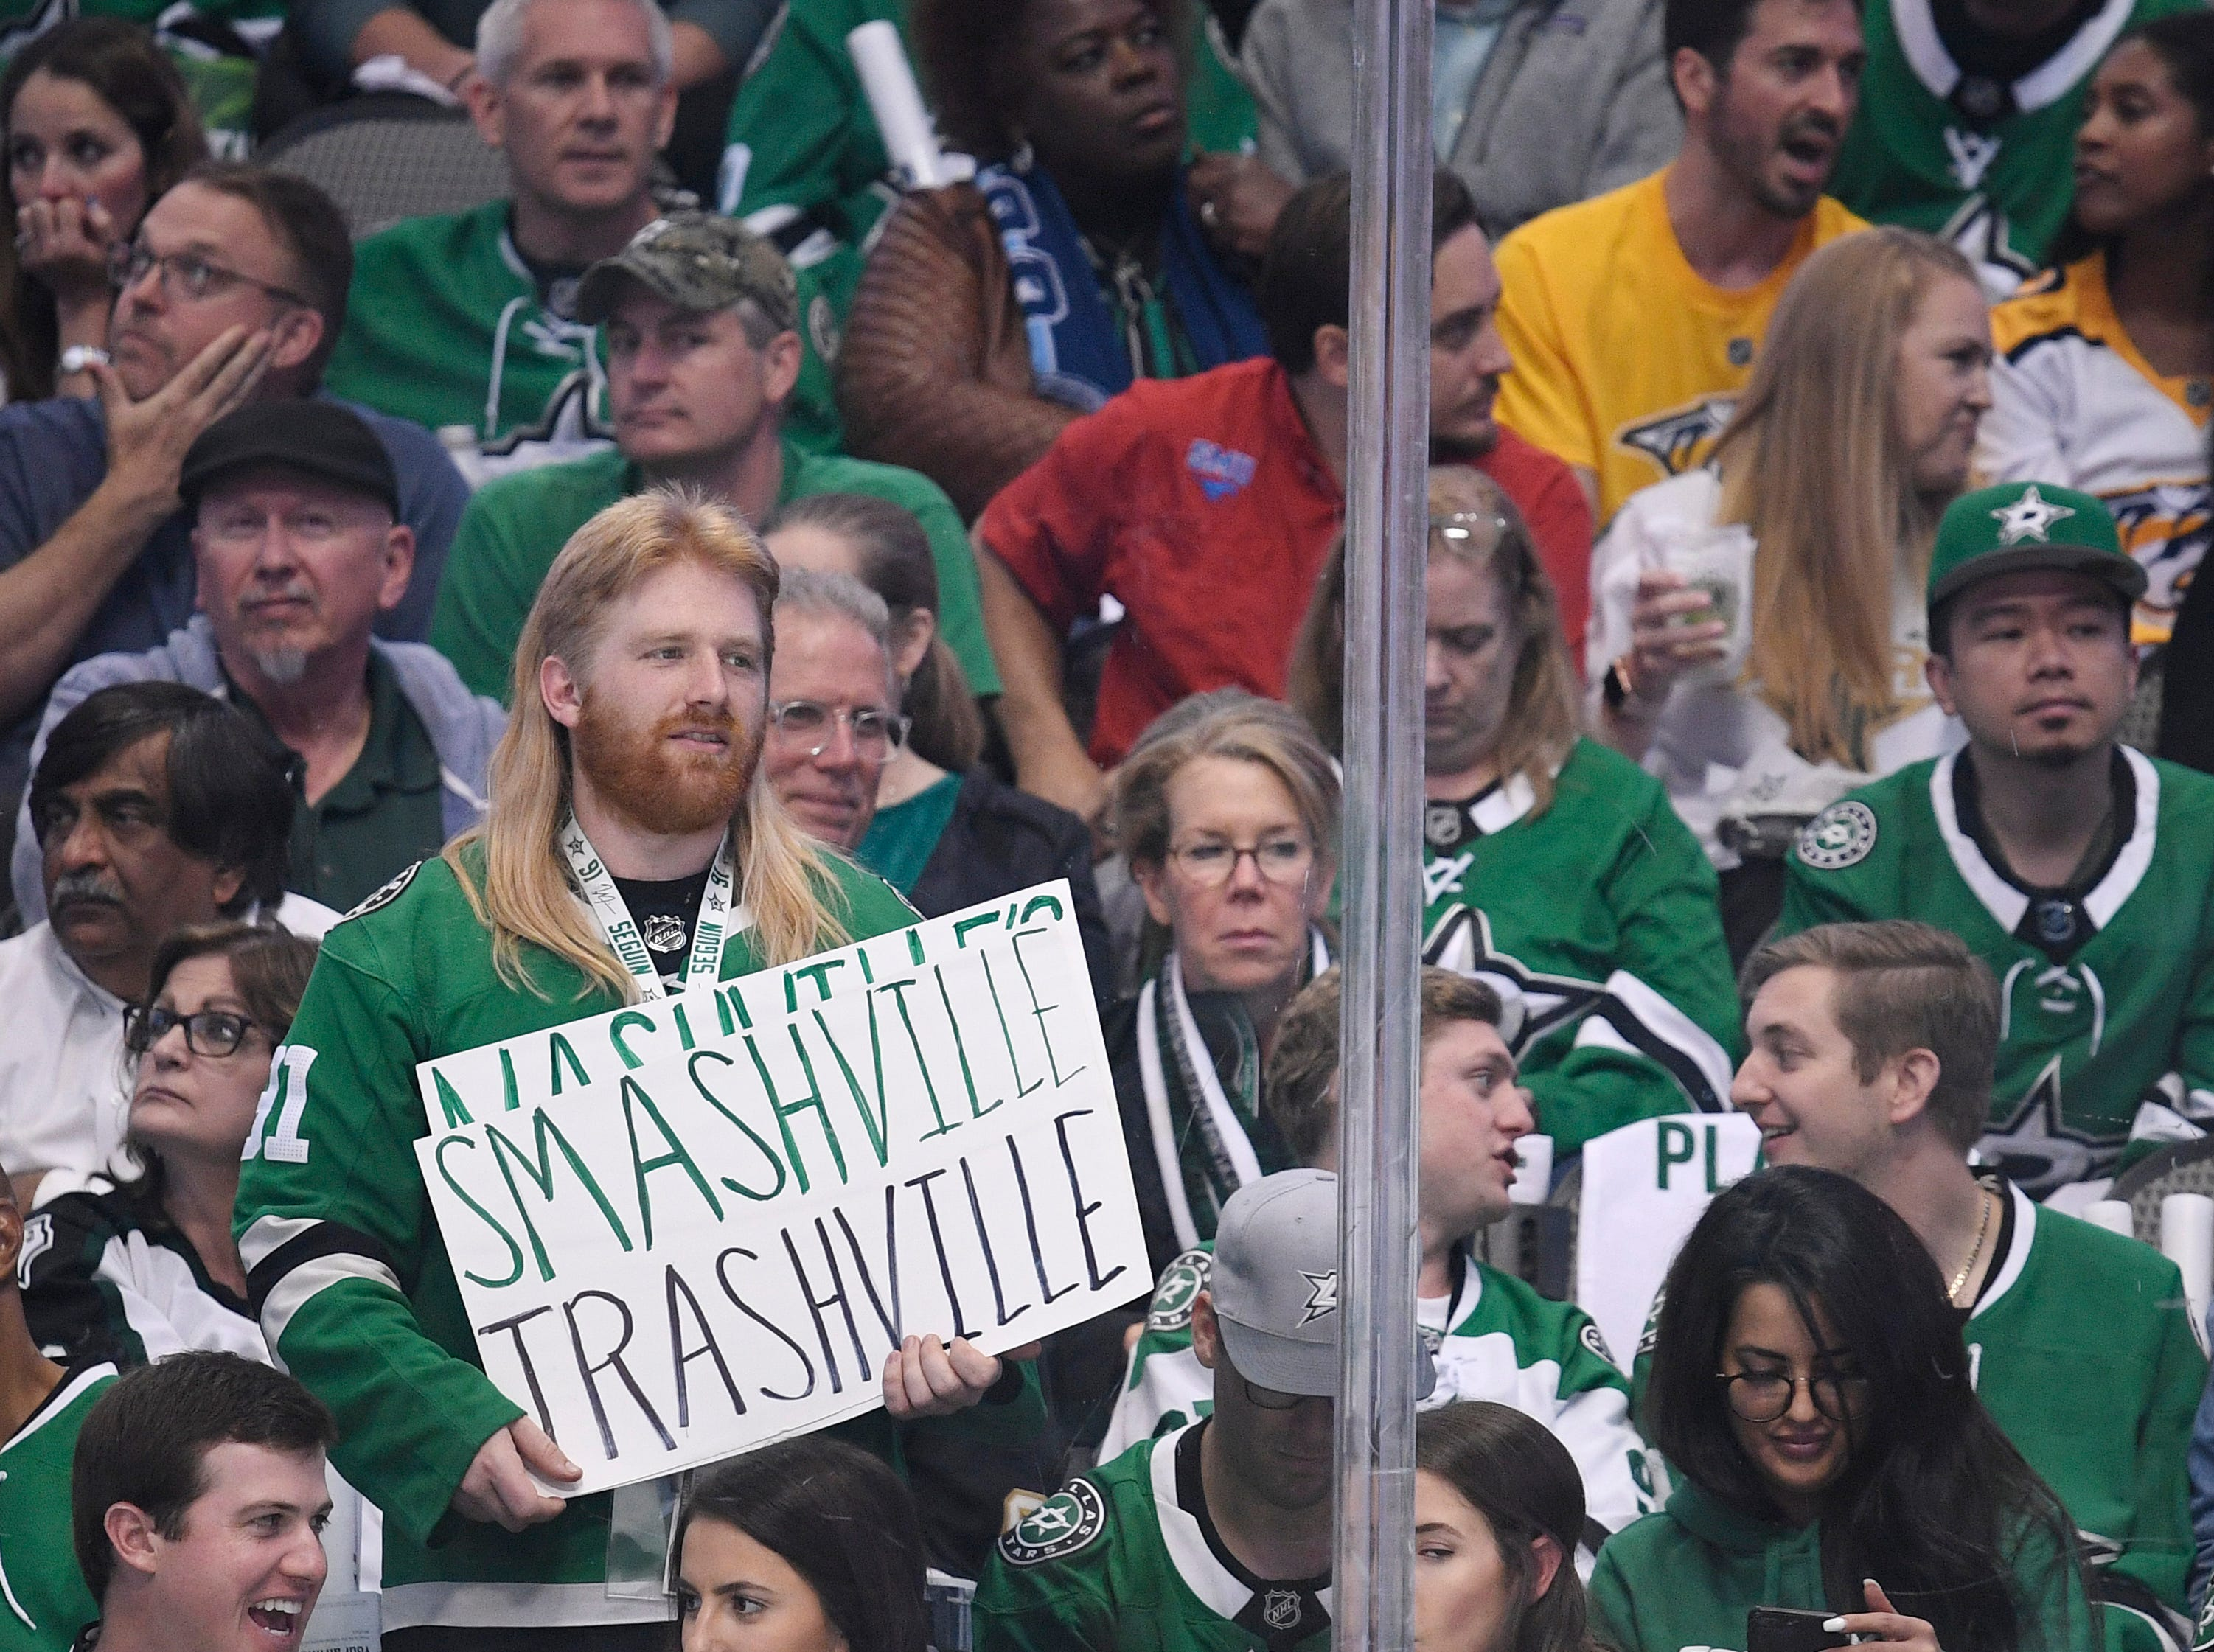 A Dallas Stars fan shares his feelings about the Nashville Predators during the first period of the divisional semifinal game at the American Airlines Center in Dallas, Texas, Monday, April 22, 2019.